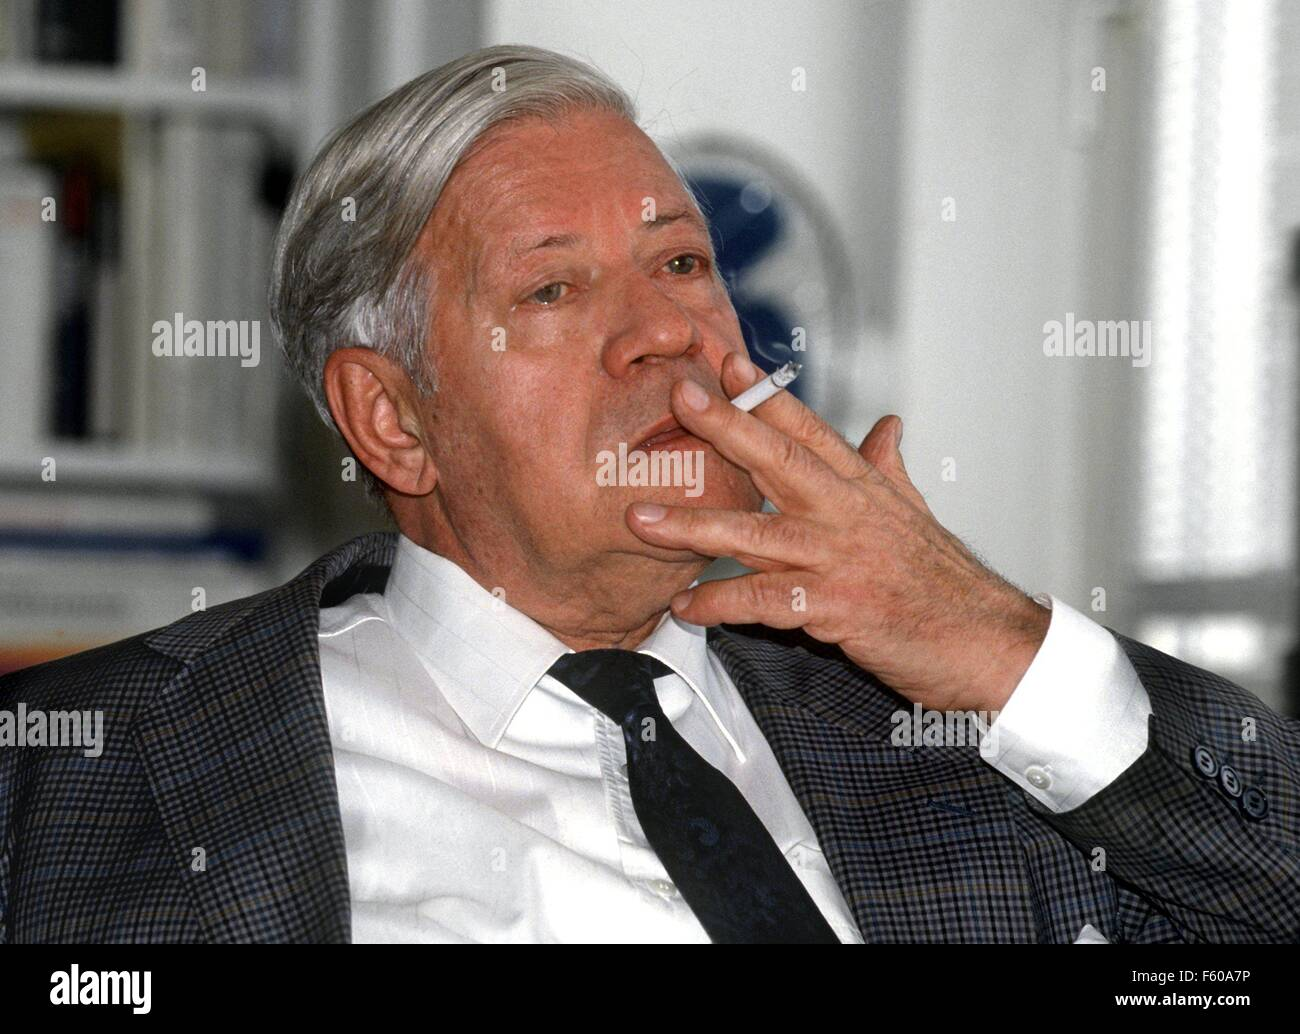 """Former Chancellor and co-editor of """"Die Zeit"""" Helmut Schmidt (picture from 13 March 1995) becomes 80 years on 23 December 1998. Stock Photo"""